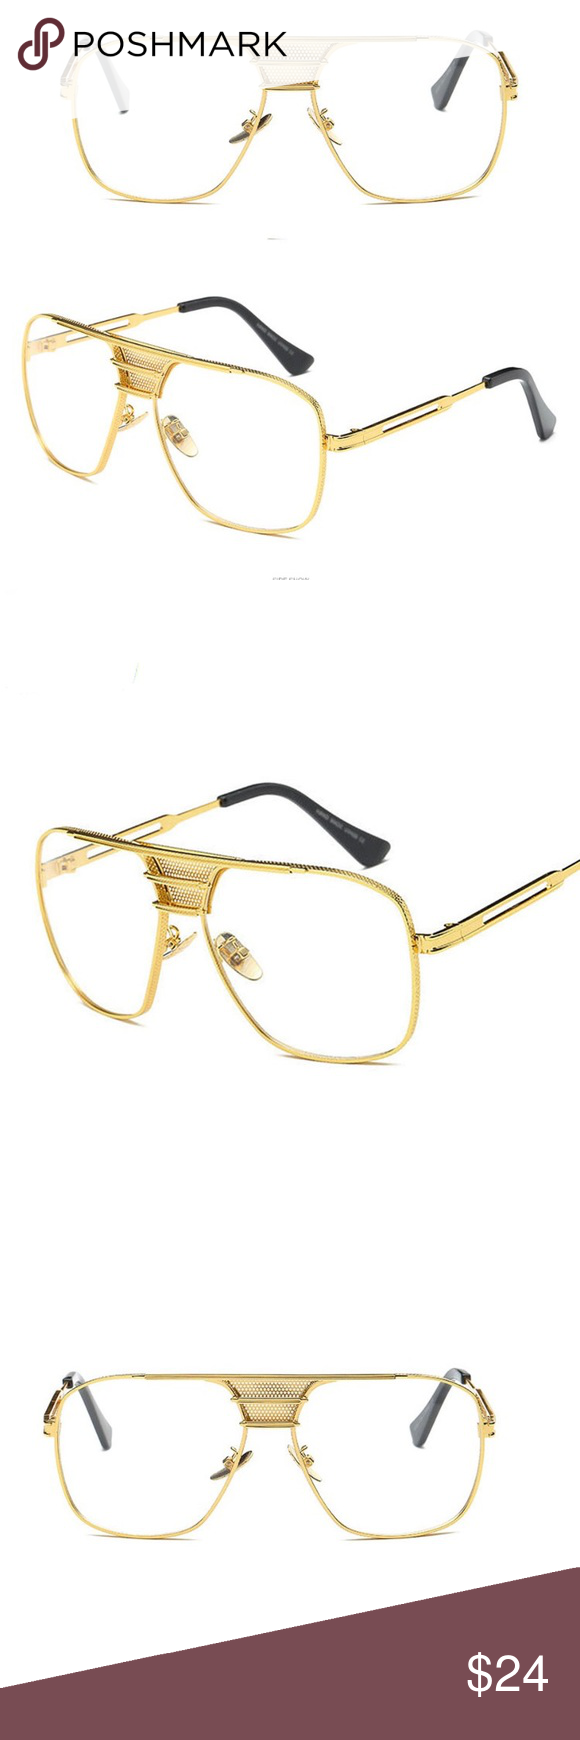 34309a0a897a Men s Oval Clear Gold Frame Glasses Men s Oval Clear Gold Frame Glasses  Metal  alloy Clear Lens Gold Frame. Tsv Jewelers Accessories Hats